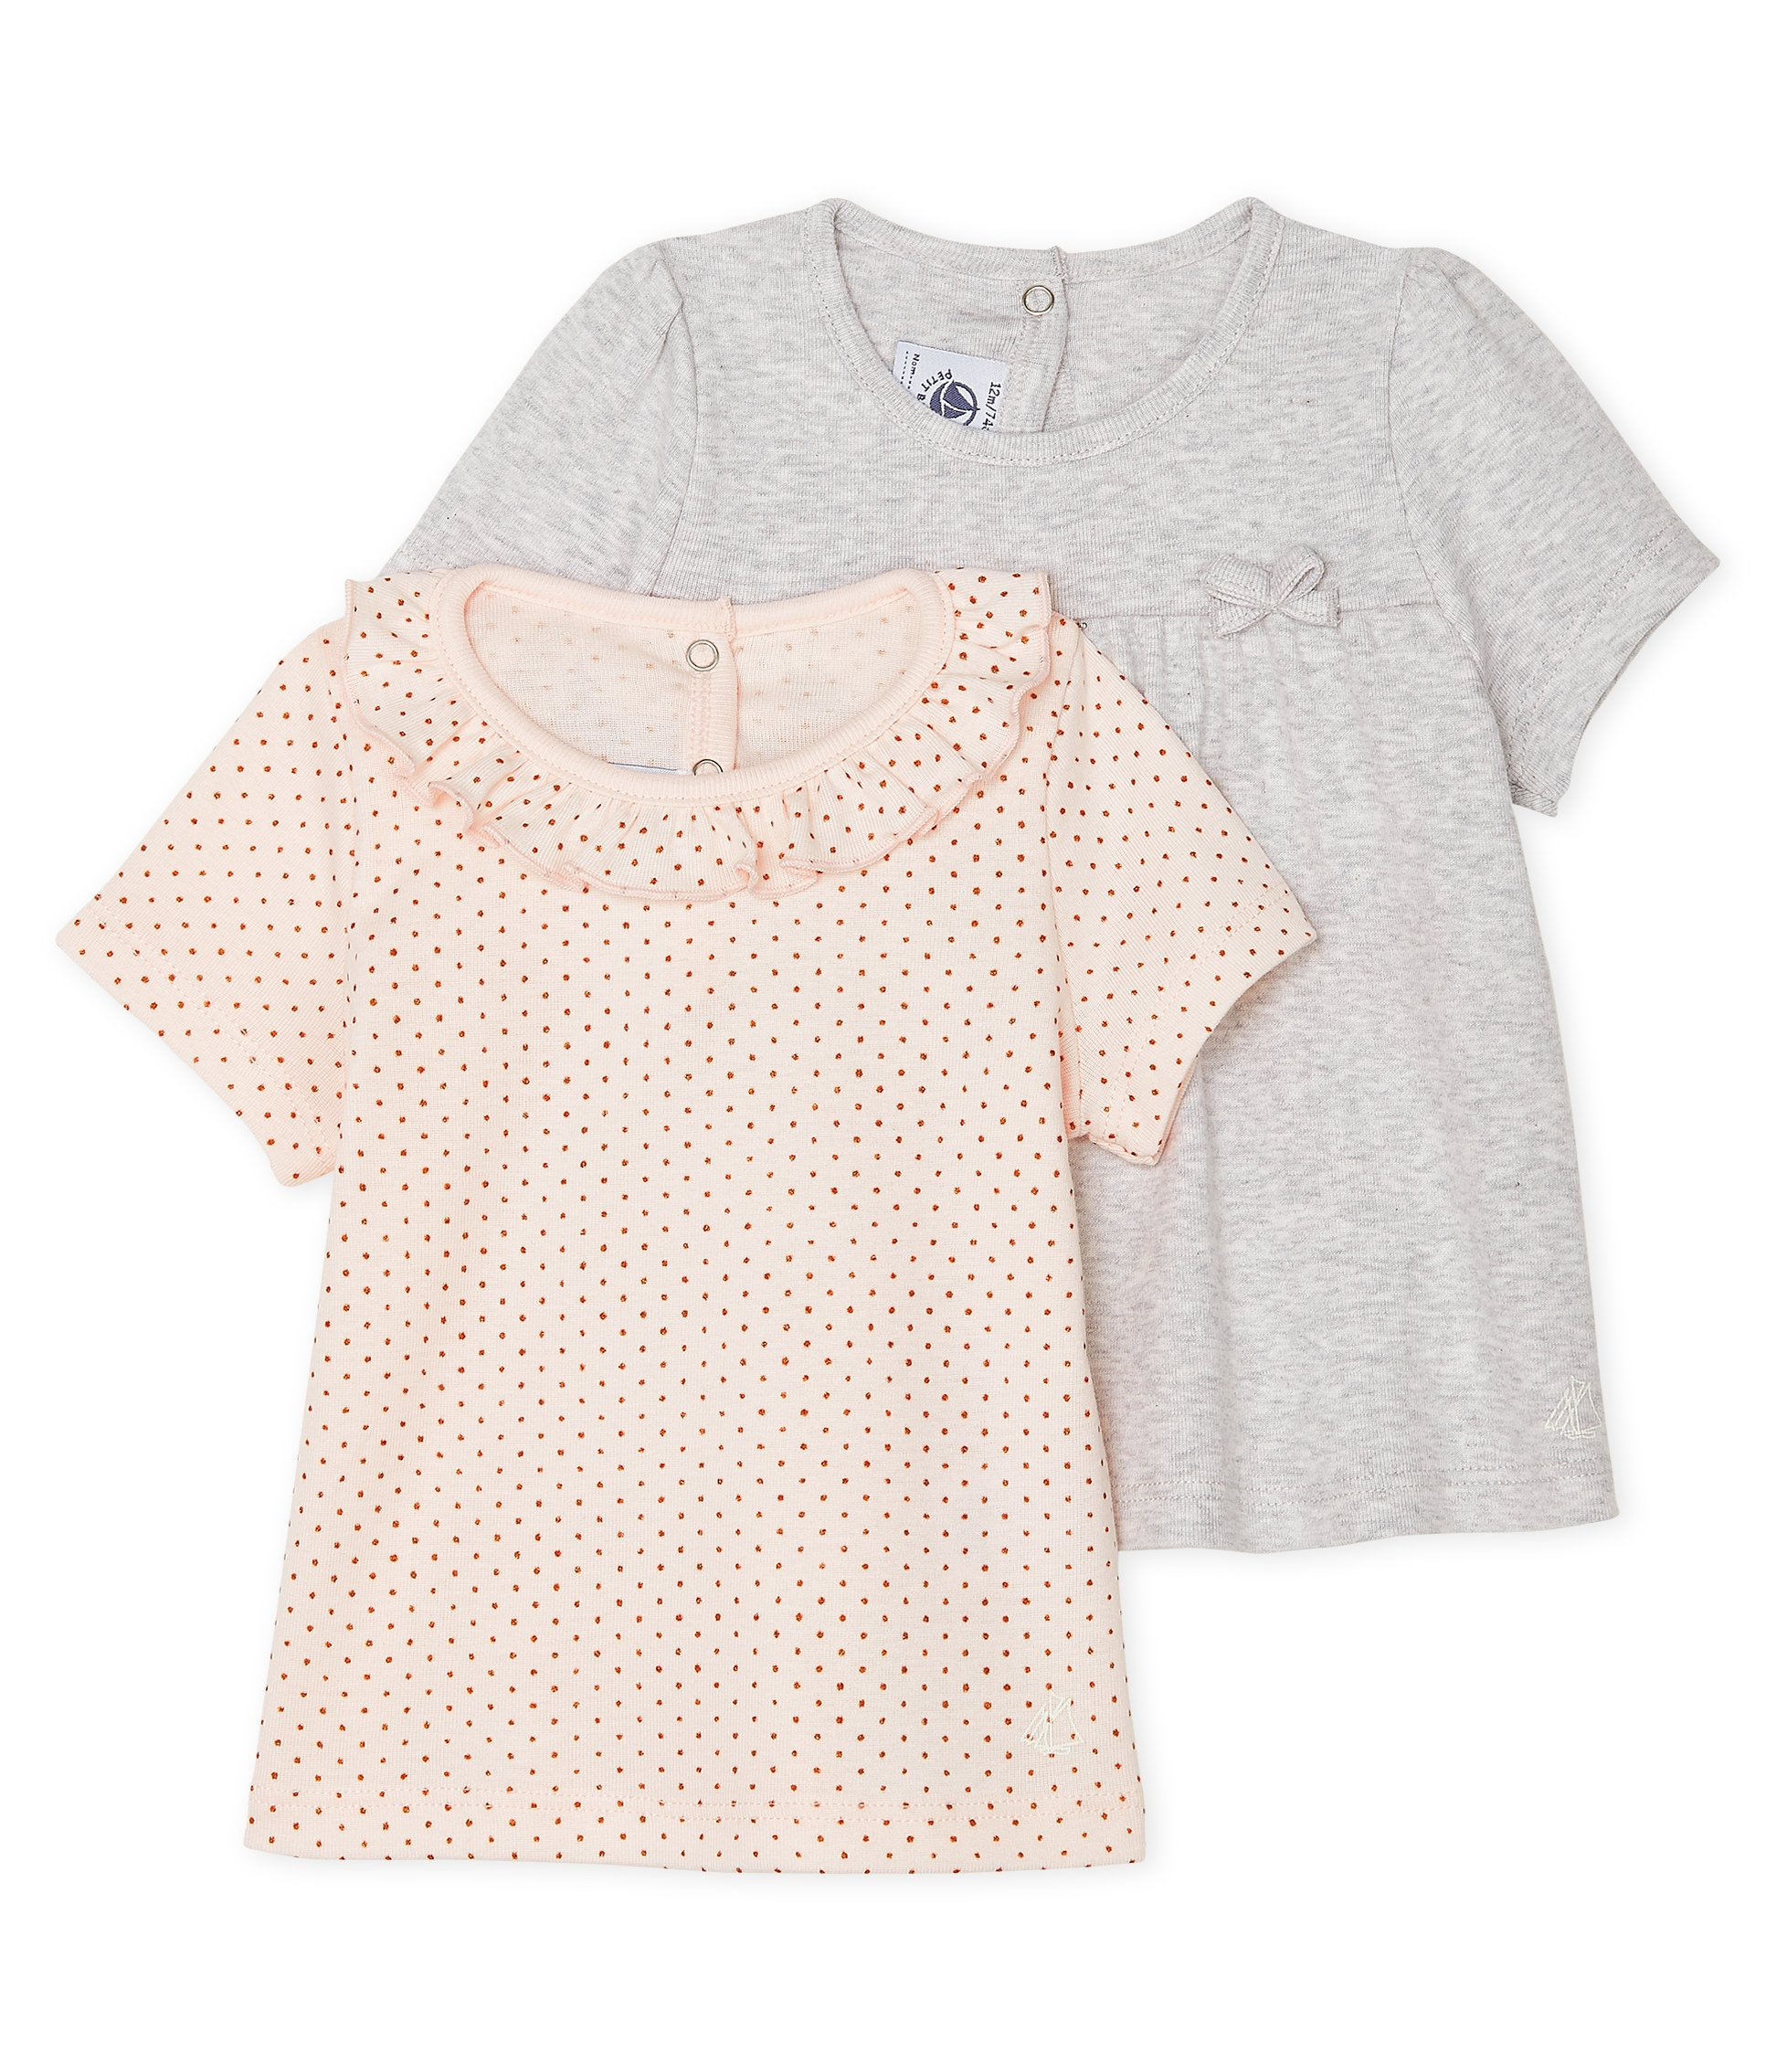 Set of 2 T-shirts for baby girls